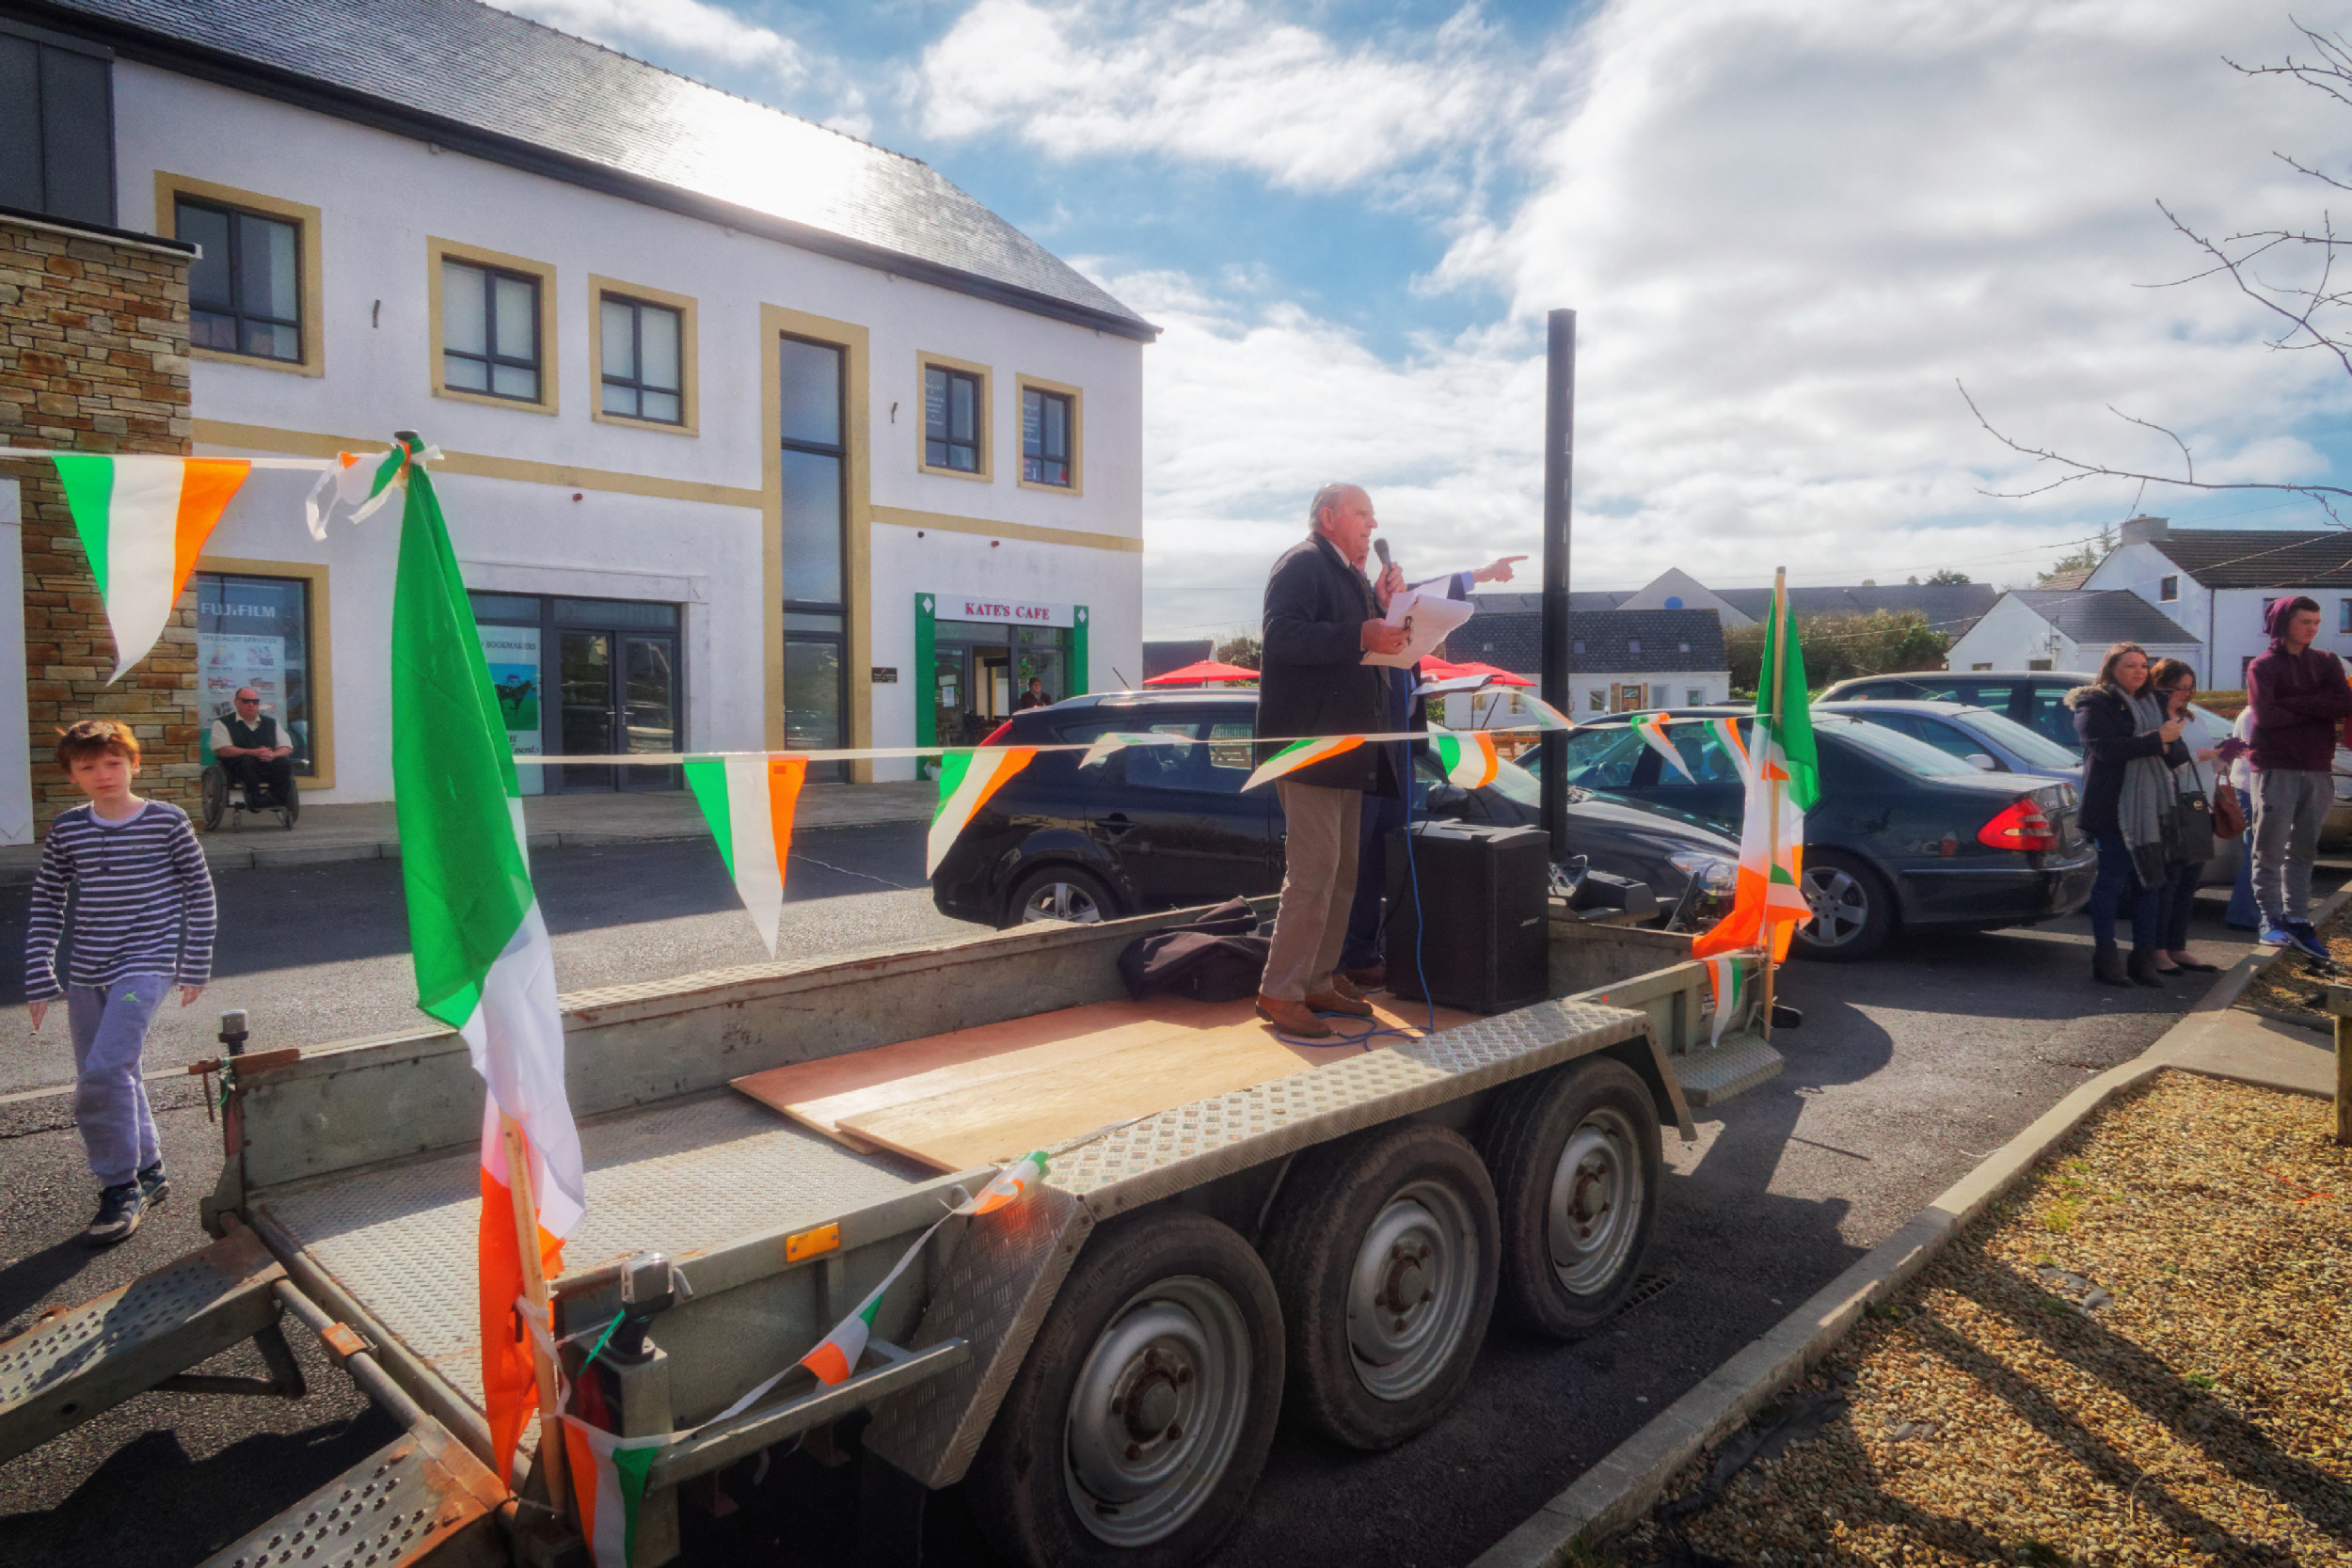 20160320130703-ie-achill-sound_parade-_DxO_13in_DxO96